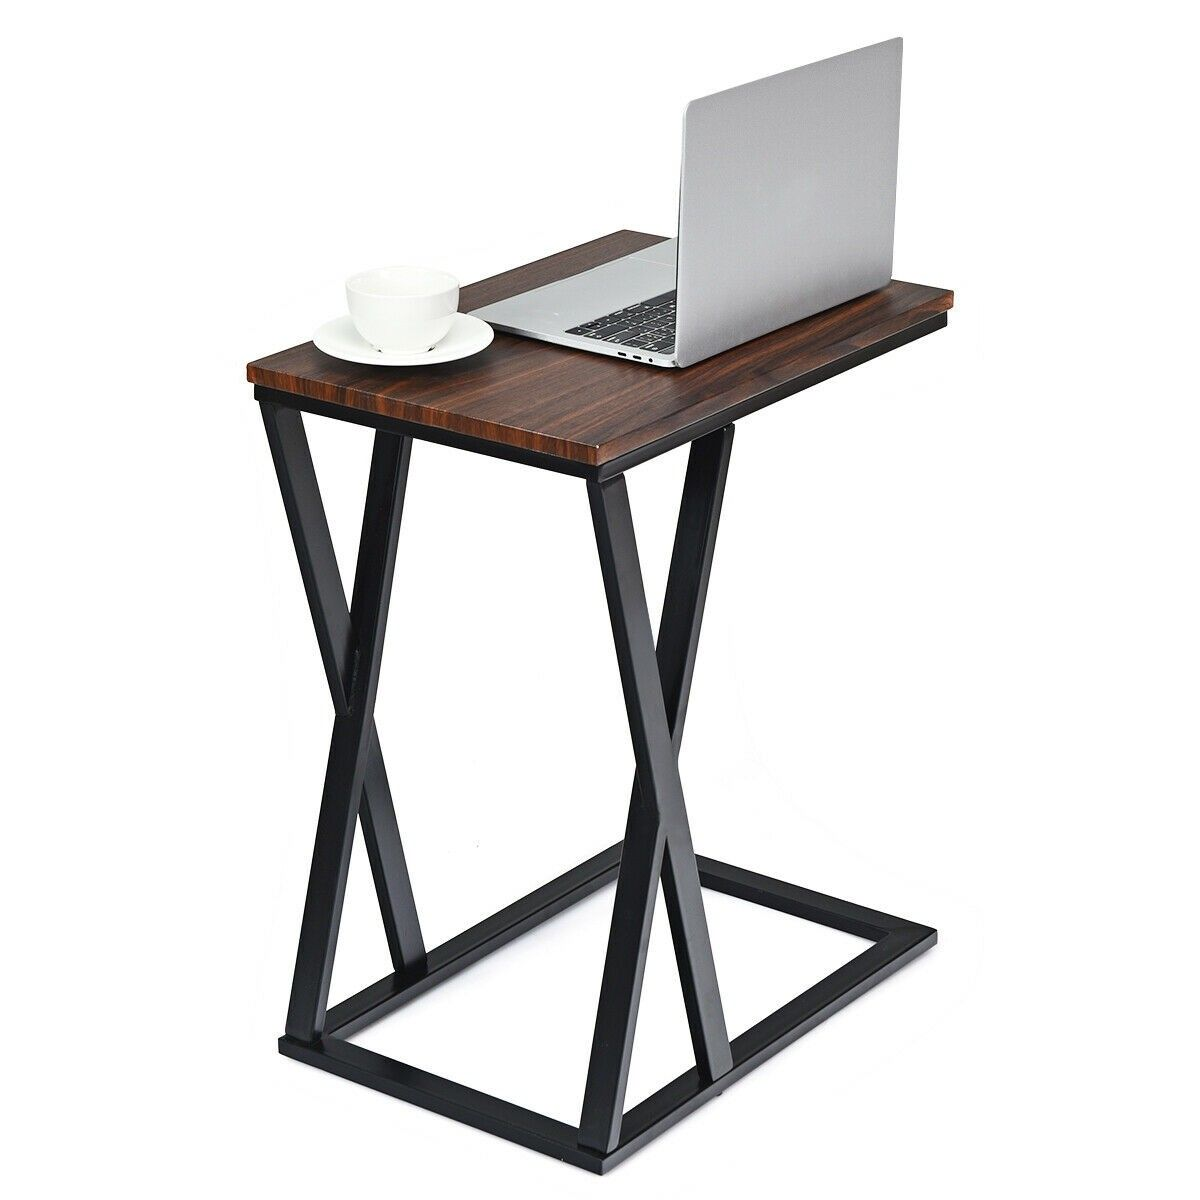 Snack Table Sofa Side End Table Laptop Desk Steel Frame Living Room 33 95 Free Shipping This Is The New Multi Decoracao De Ambientes Mesa De Canto Decoracao